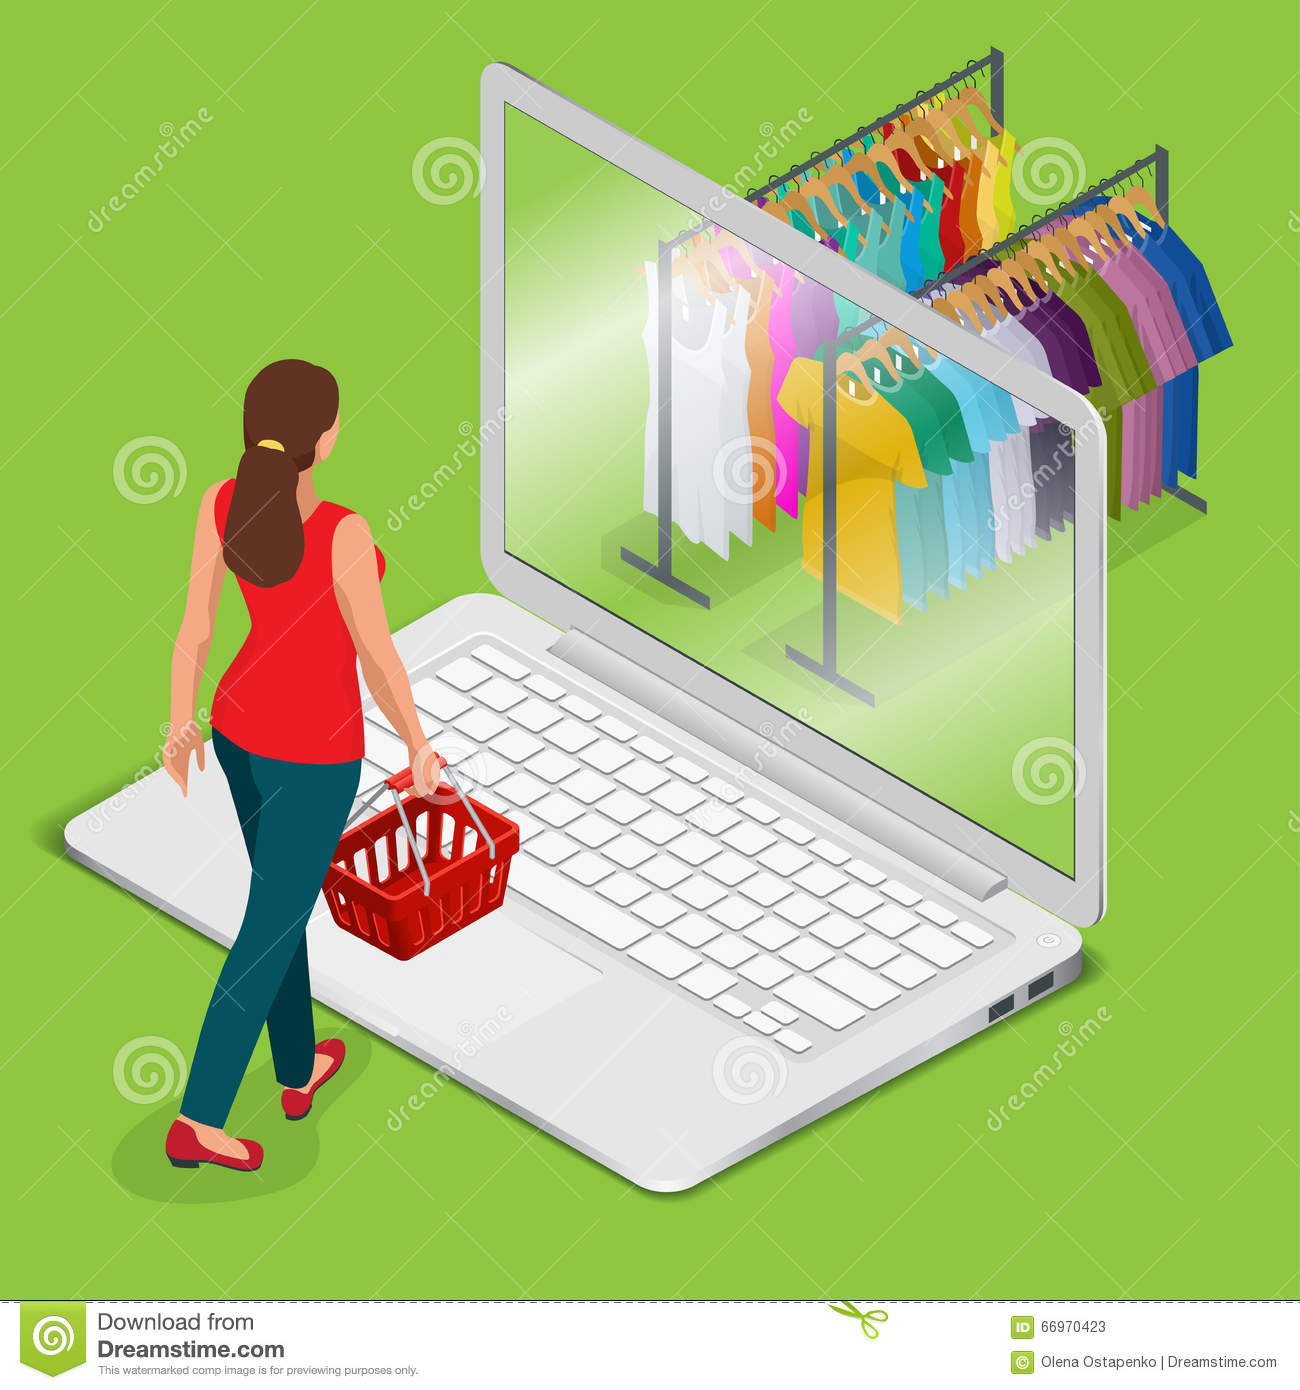 e-commerce-pay-line-line-shopping-concept-mobile-grocery-shopping-e-commerce-online-store-flat-d-web-isometric-66970423.jpg